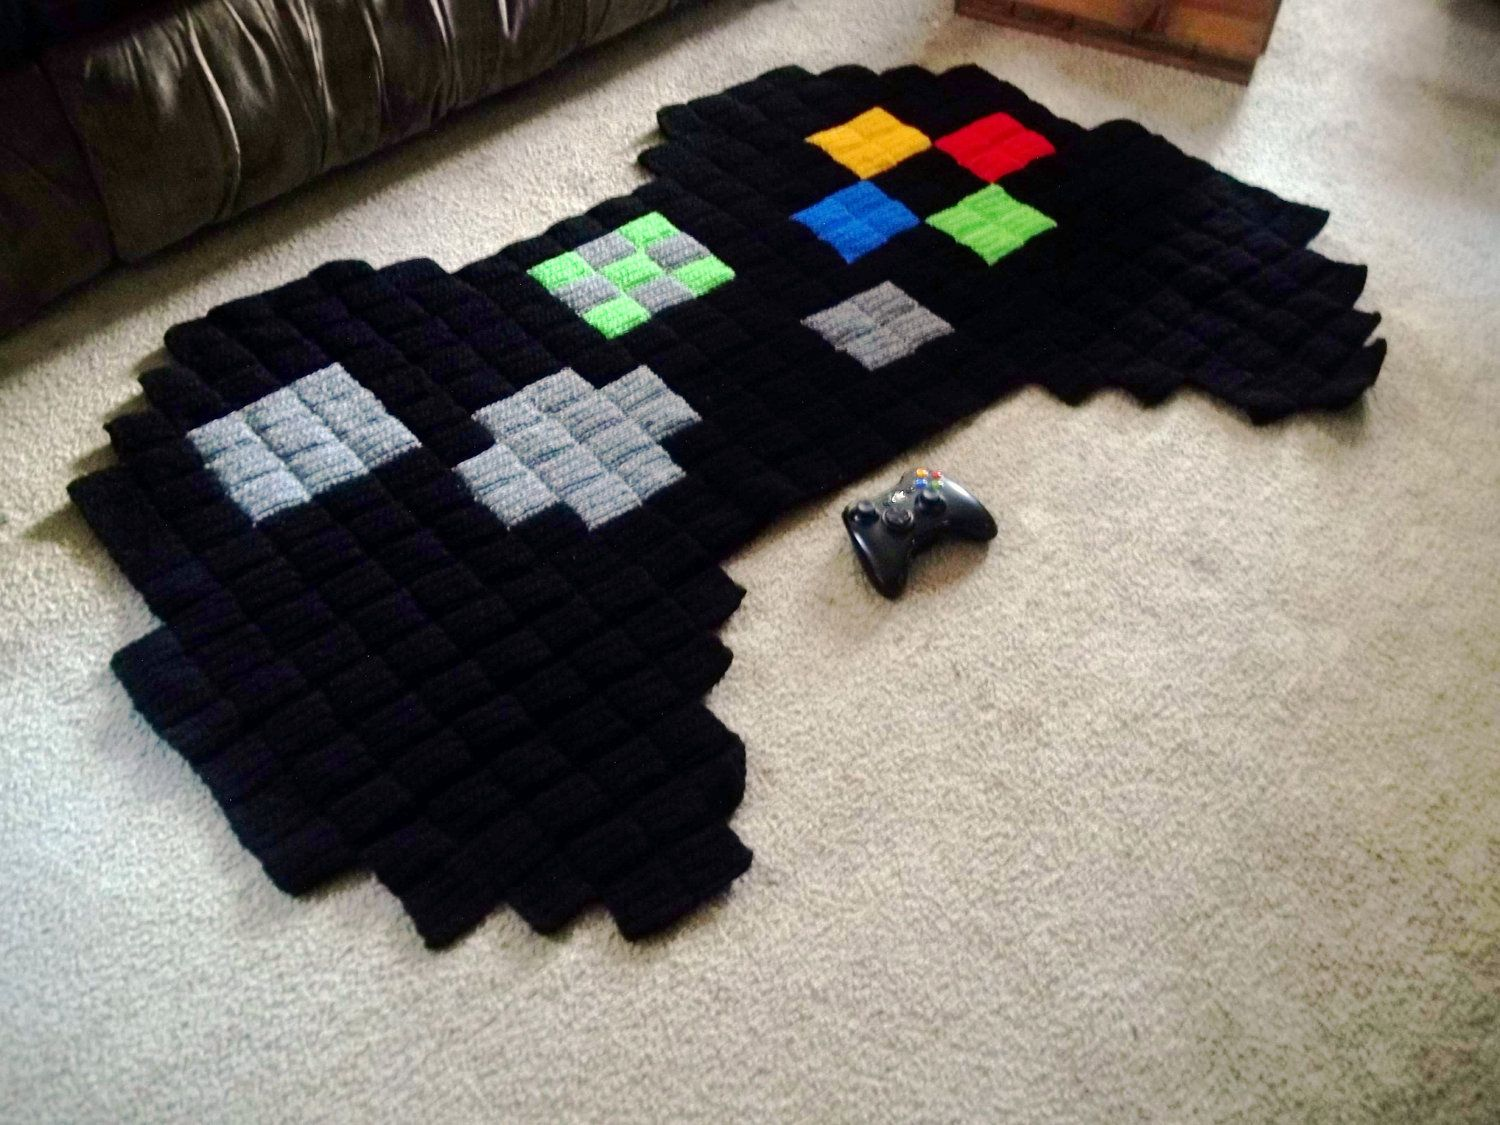 Gaming Teppich Giant 8 Bit Xbox Controller Rug 55 00 Via Etsy I Know What